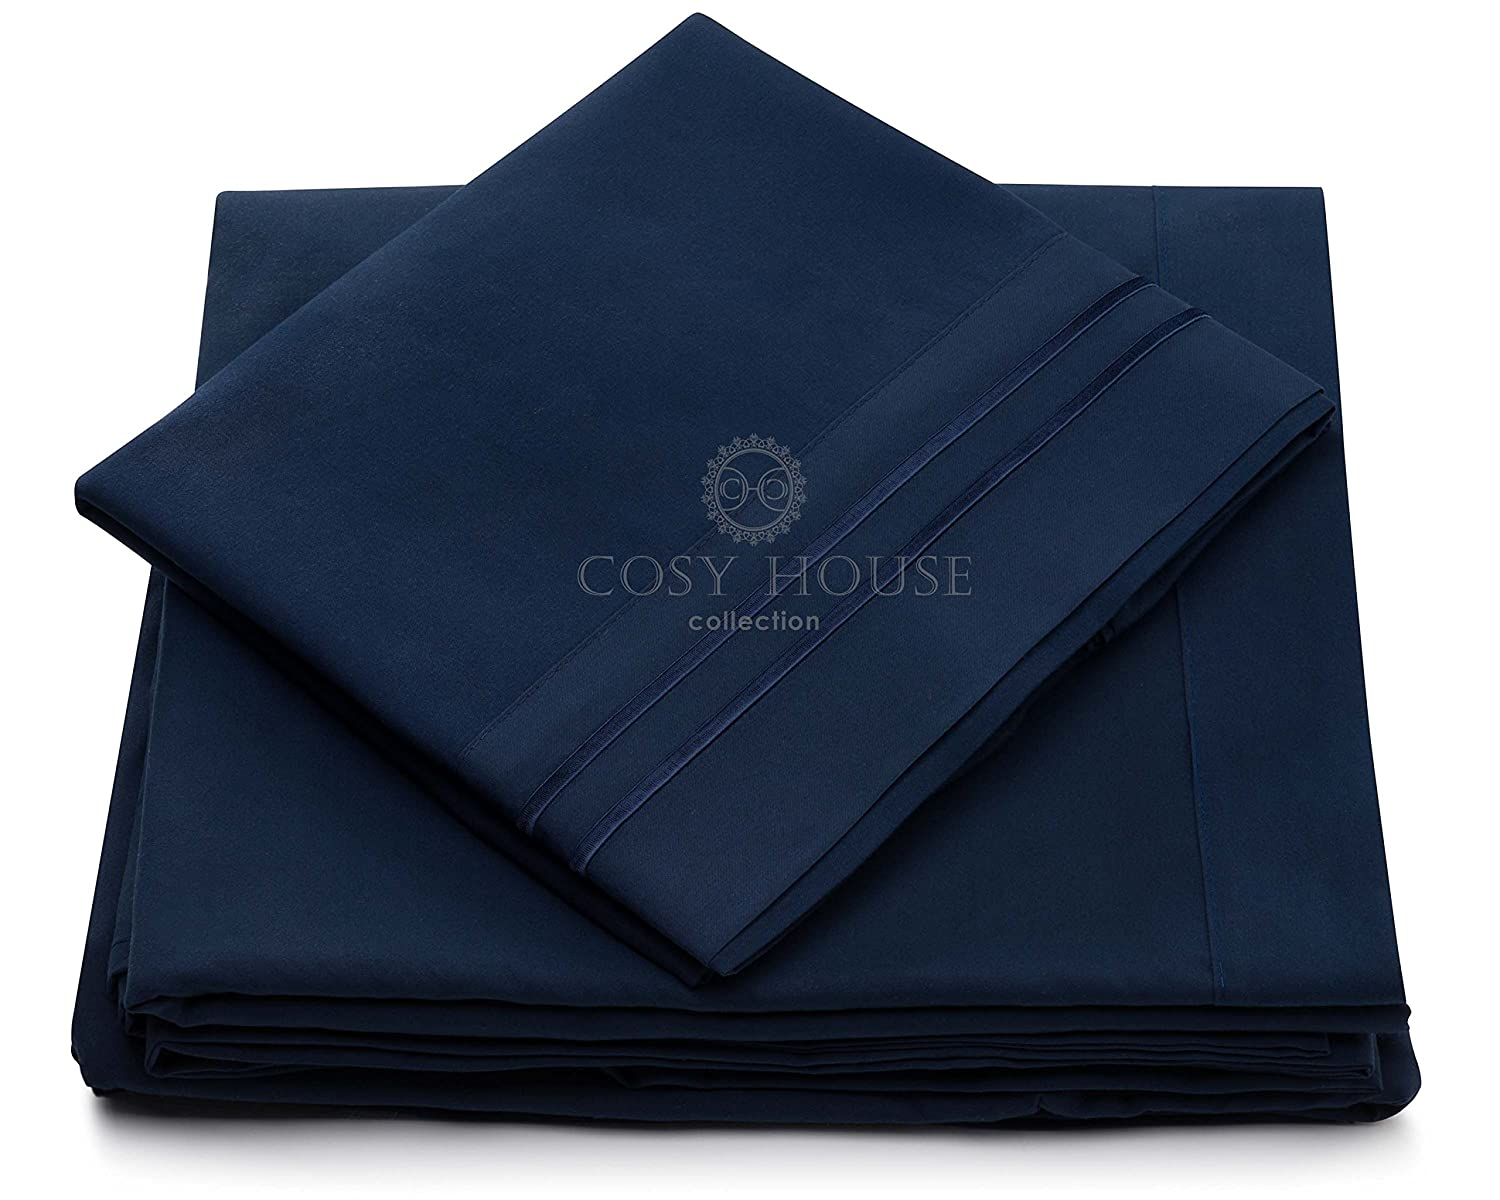 Cosy House Collection Silky Soft 4 pc Bed Sheet Set- High Quality 100% Microfiber- Wrinkle, Fade Free & Stain Resistant- Hypoallergenic- Luxury Fitted & Flat Sheets Plus Pillowcases(Navy Blue, King)